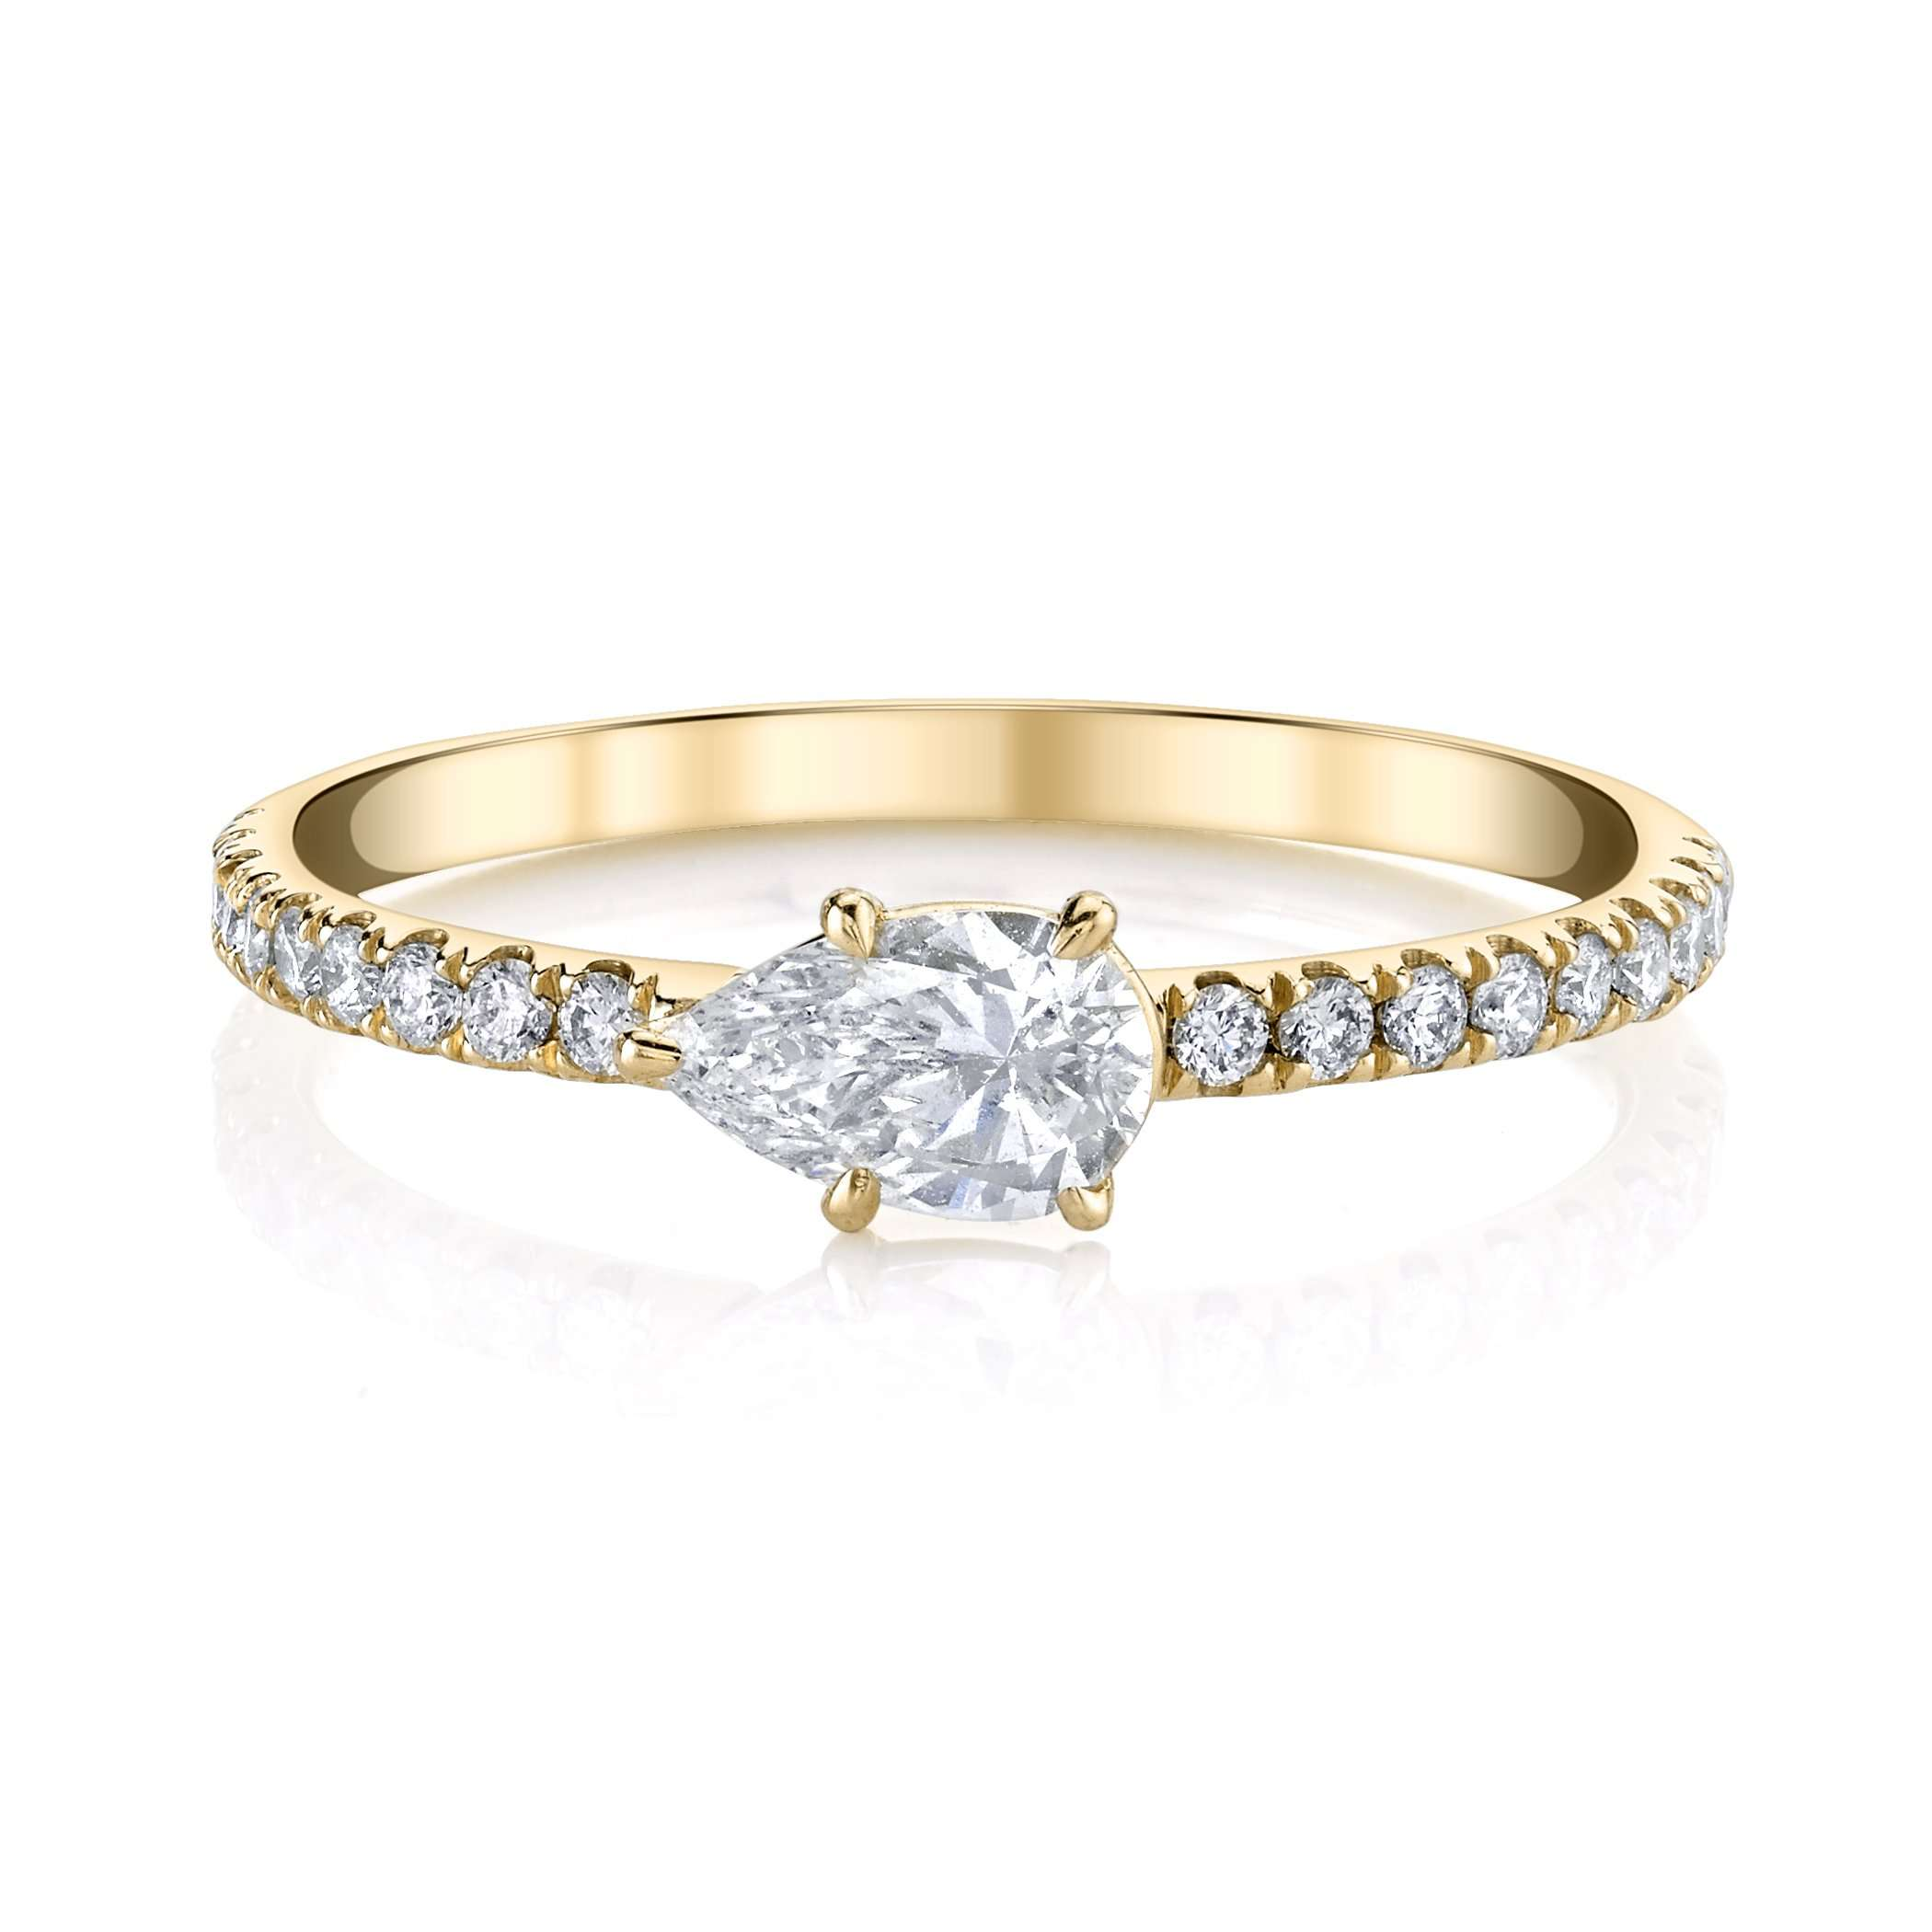 East-west pear diamond engagement ring with yellow gold eternity band on a white background